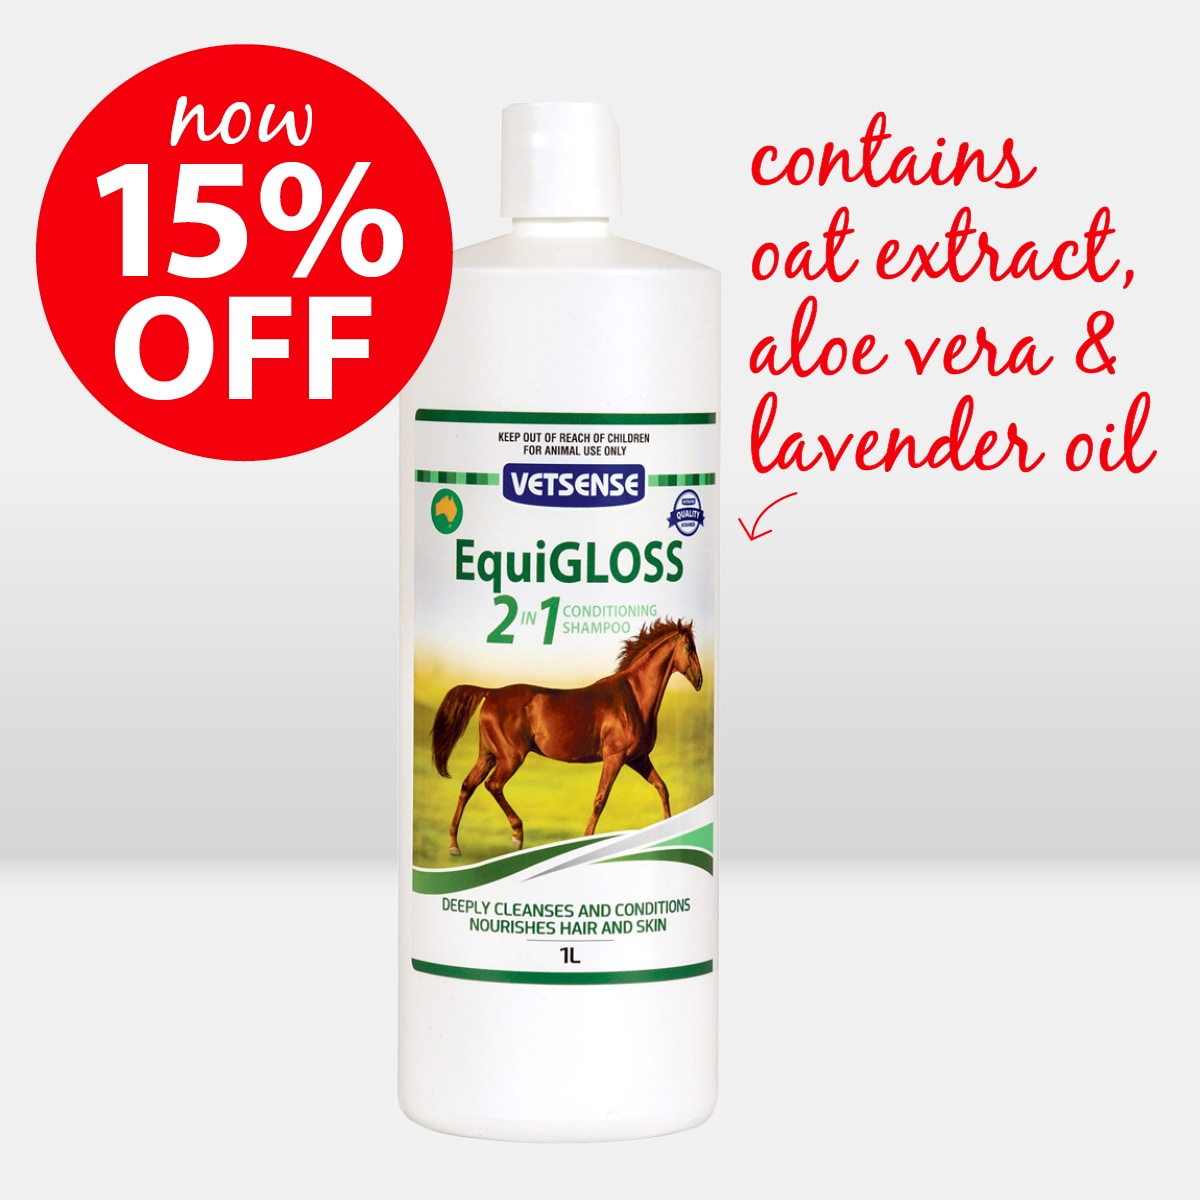 Vetsense Equigloss 2in1 Conditioning Shampoo ON SALE NOW